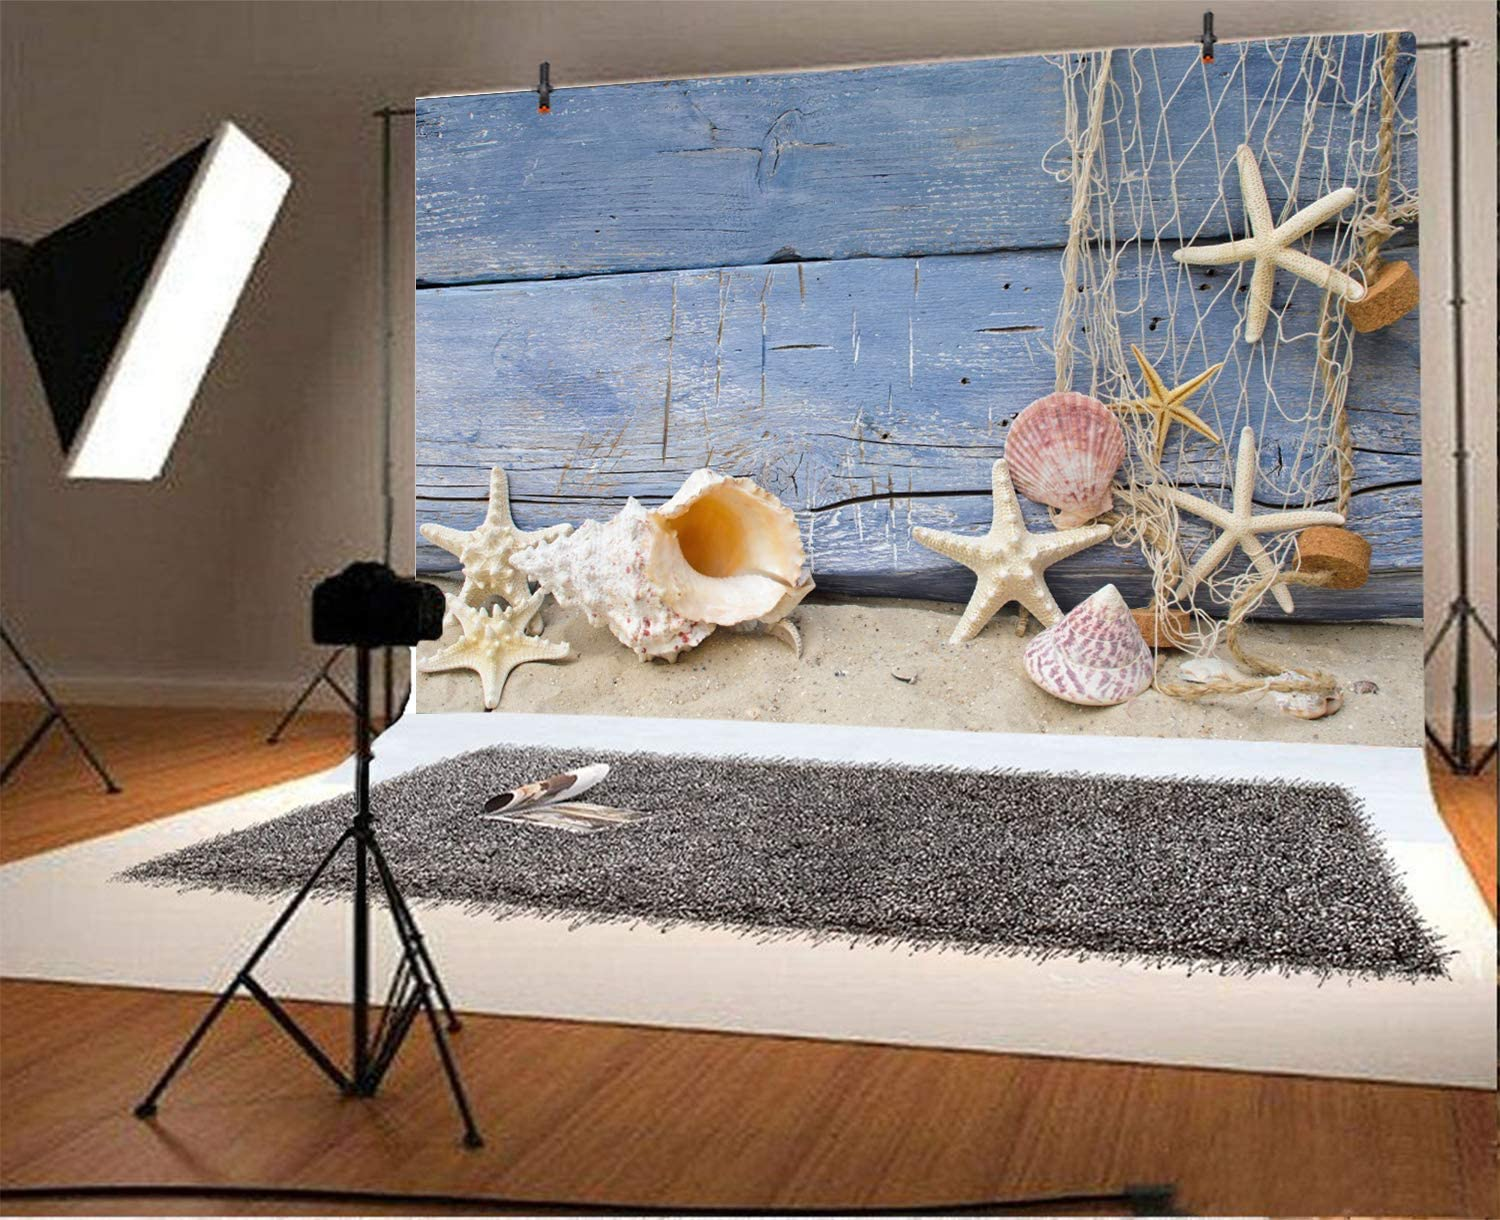 5x3ft Polyester Marine Life Backdrop Fishing Net Flotsam Starfish Shells Conch Sand Wooden Plank Board Wall Photography Background Baby Shower Sailor Children Happy Birthday Photo Booth Prop